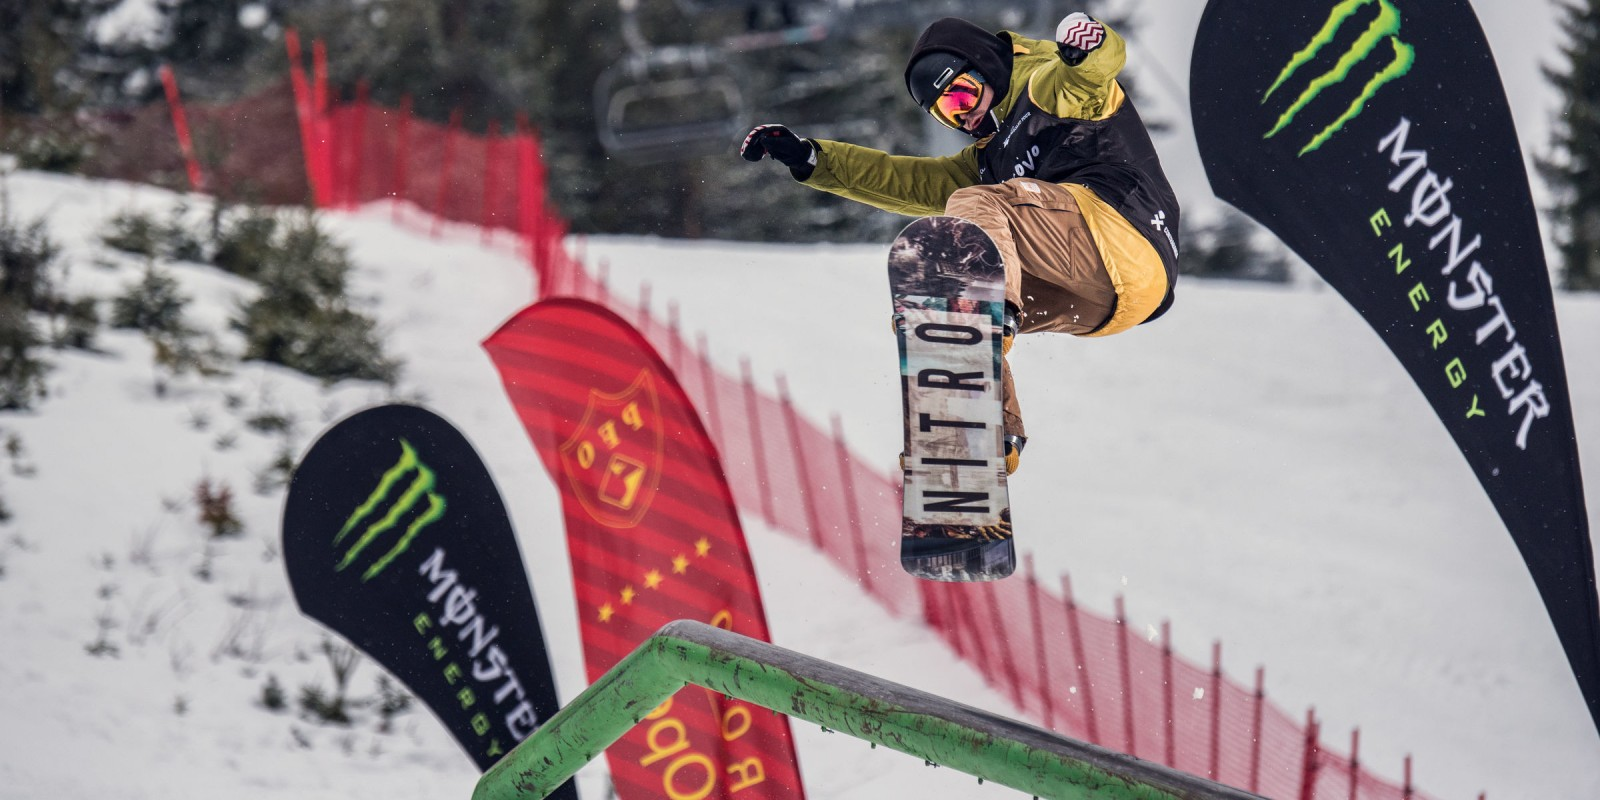 Pamporovo Freestyle Open is the biggest snowboard and freeski event in Bulgaria and is part of the European cup and world snowboard tour.